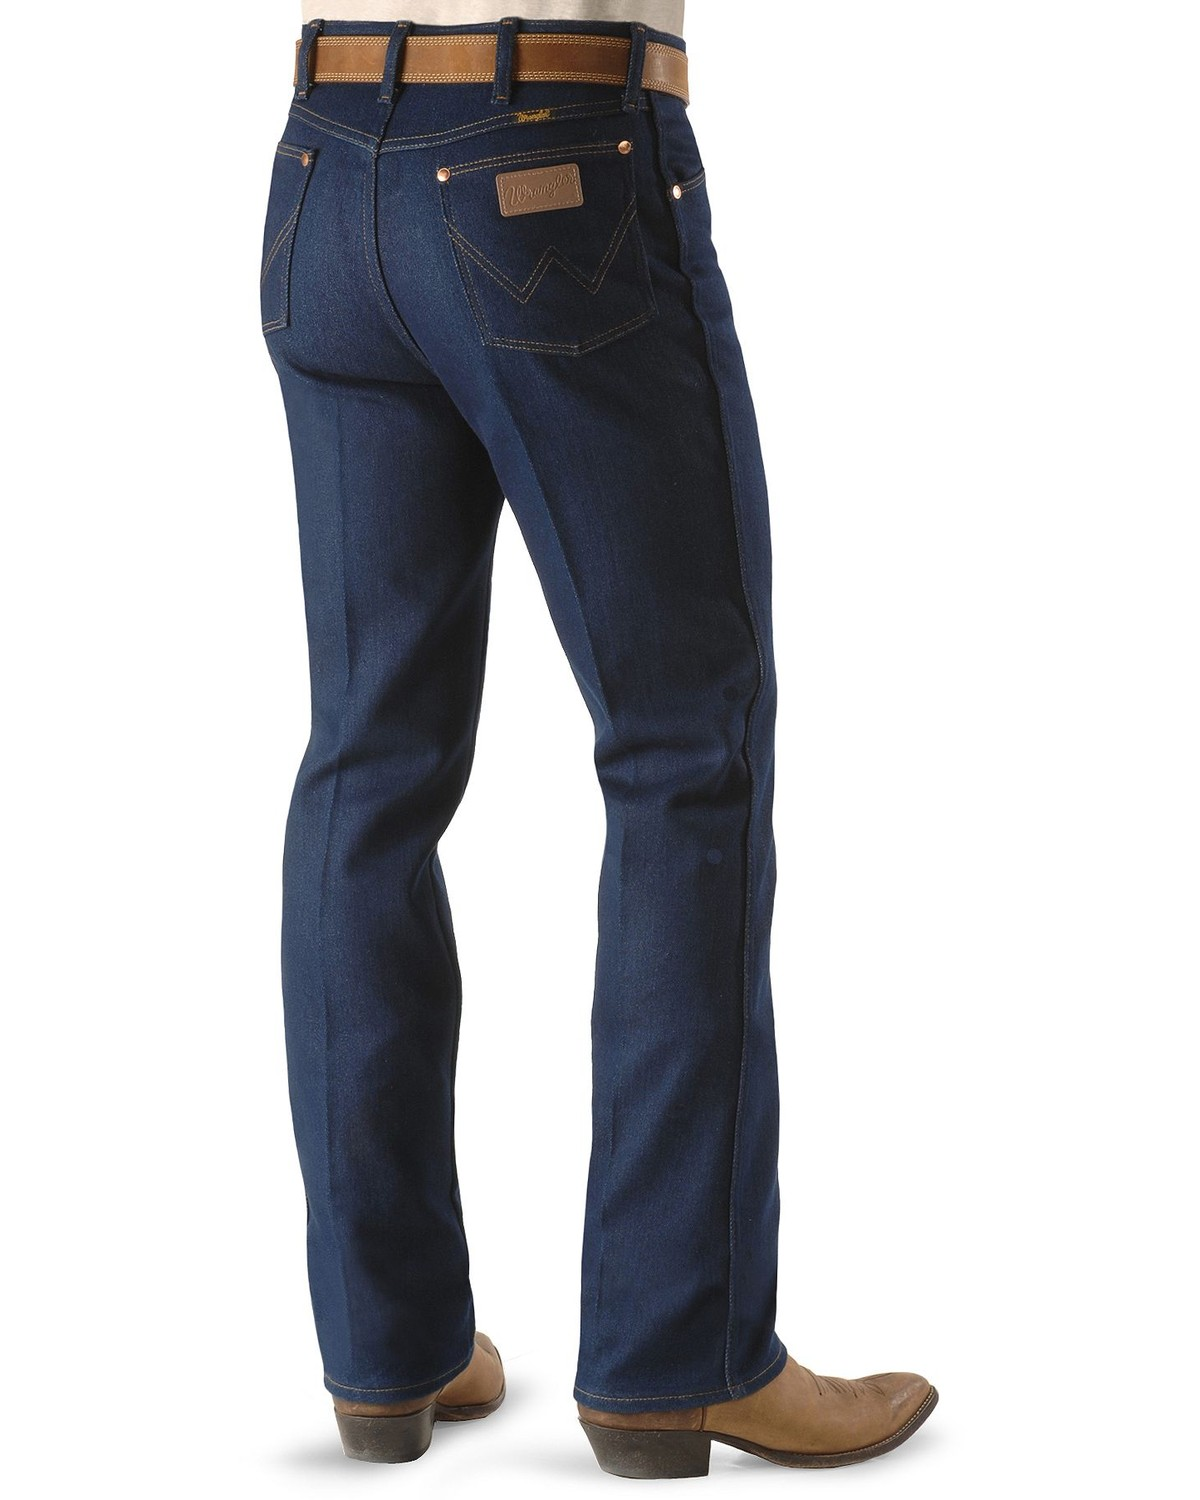 Horse Decor For The Home Wrangler Jeans 947 Regular Fit Stretch Sheplers